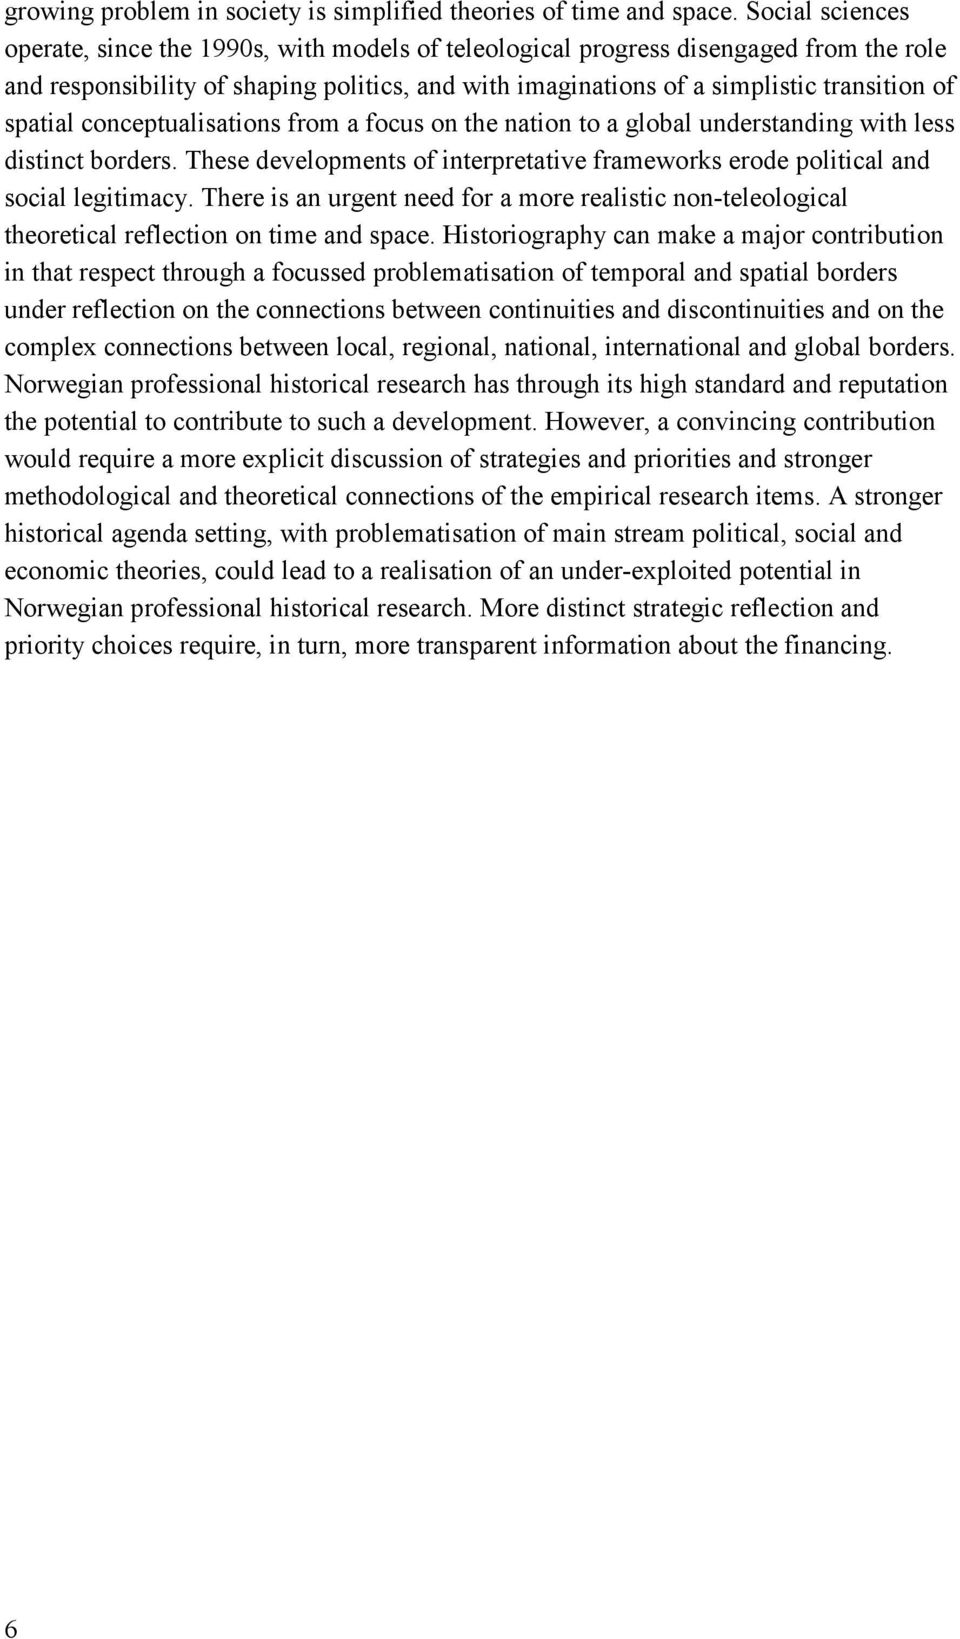 spatial conceptualisations from a focus on the nation to a global understanding with less distinct borders. These developments of interpretative frameworks erode political and social legitimacy.